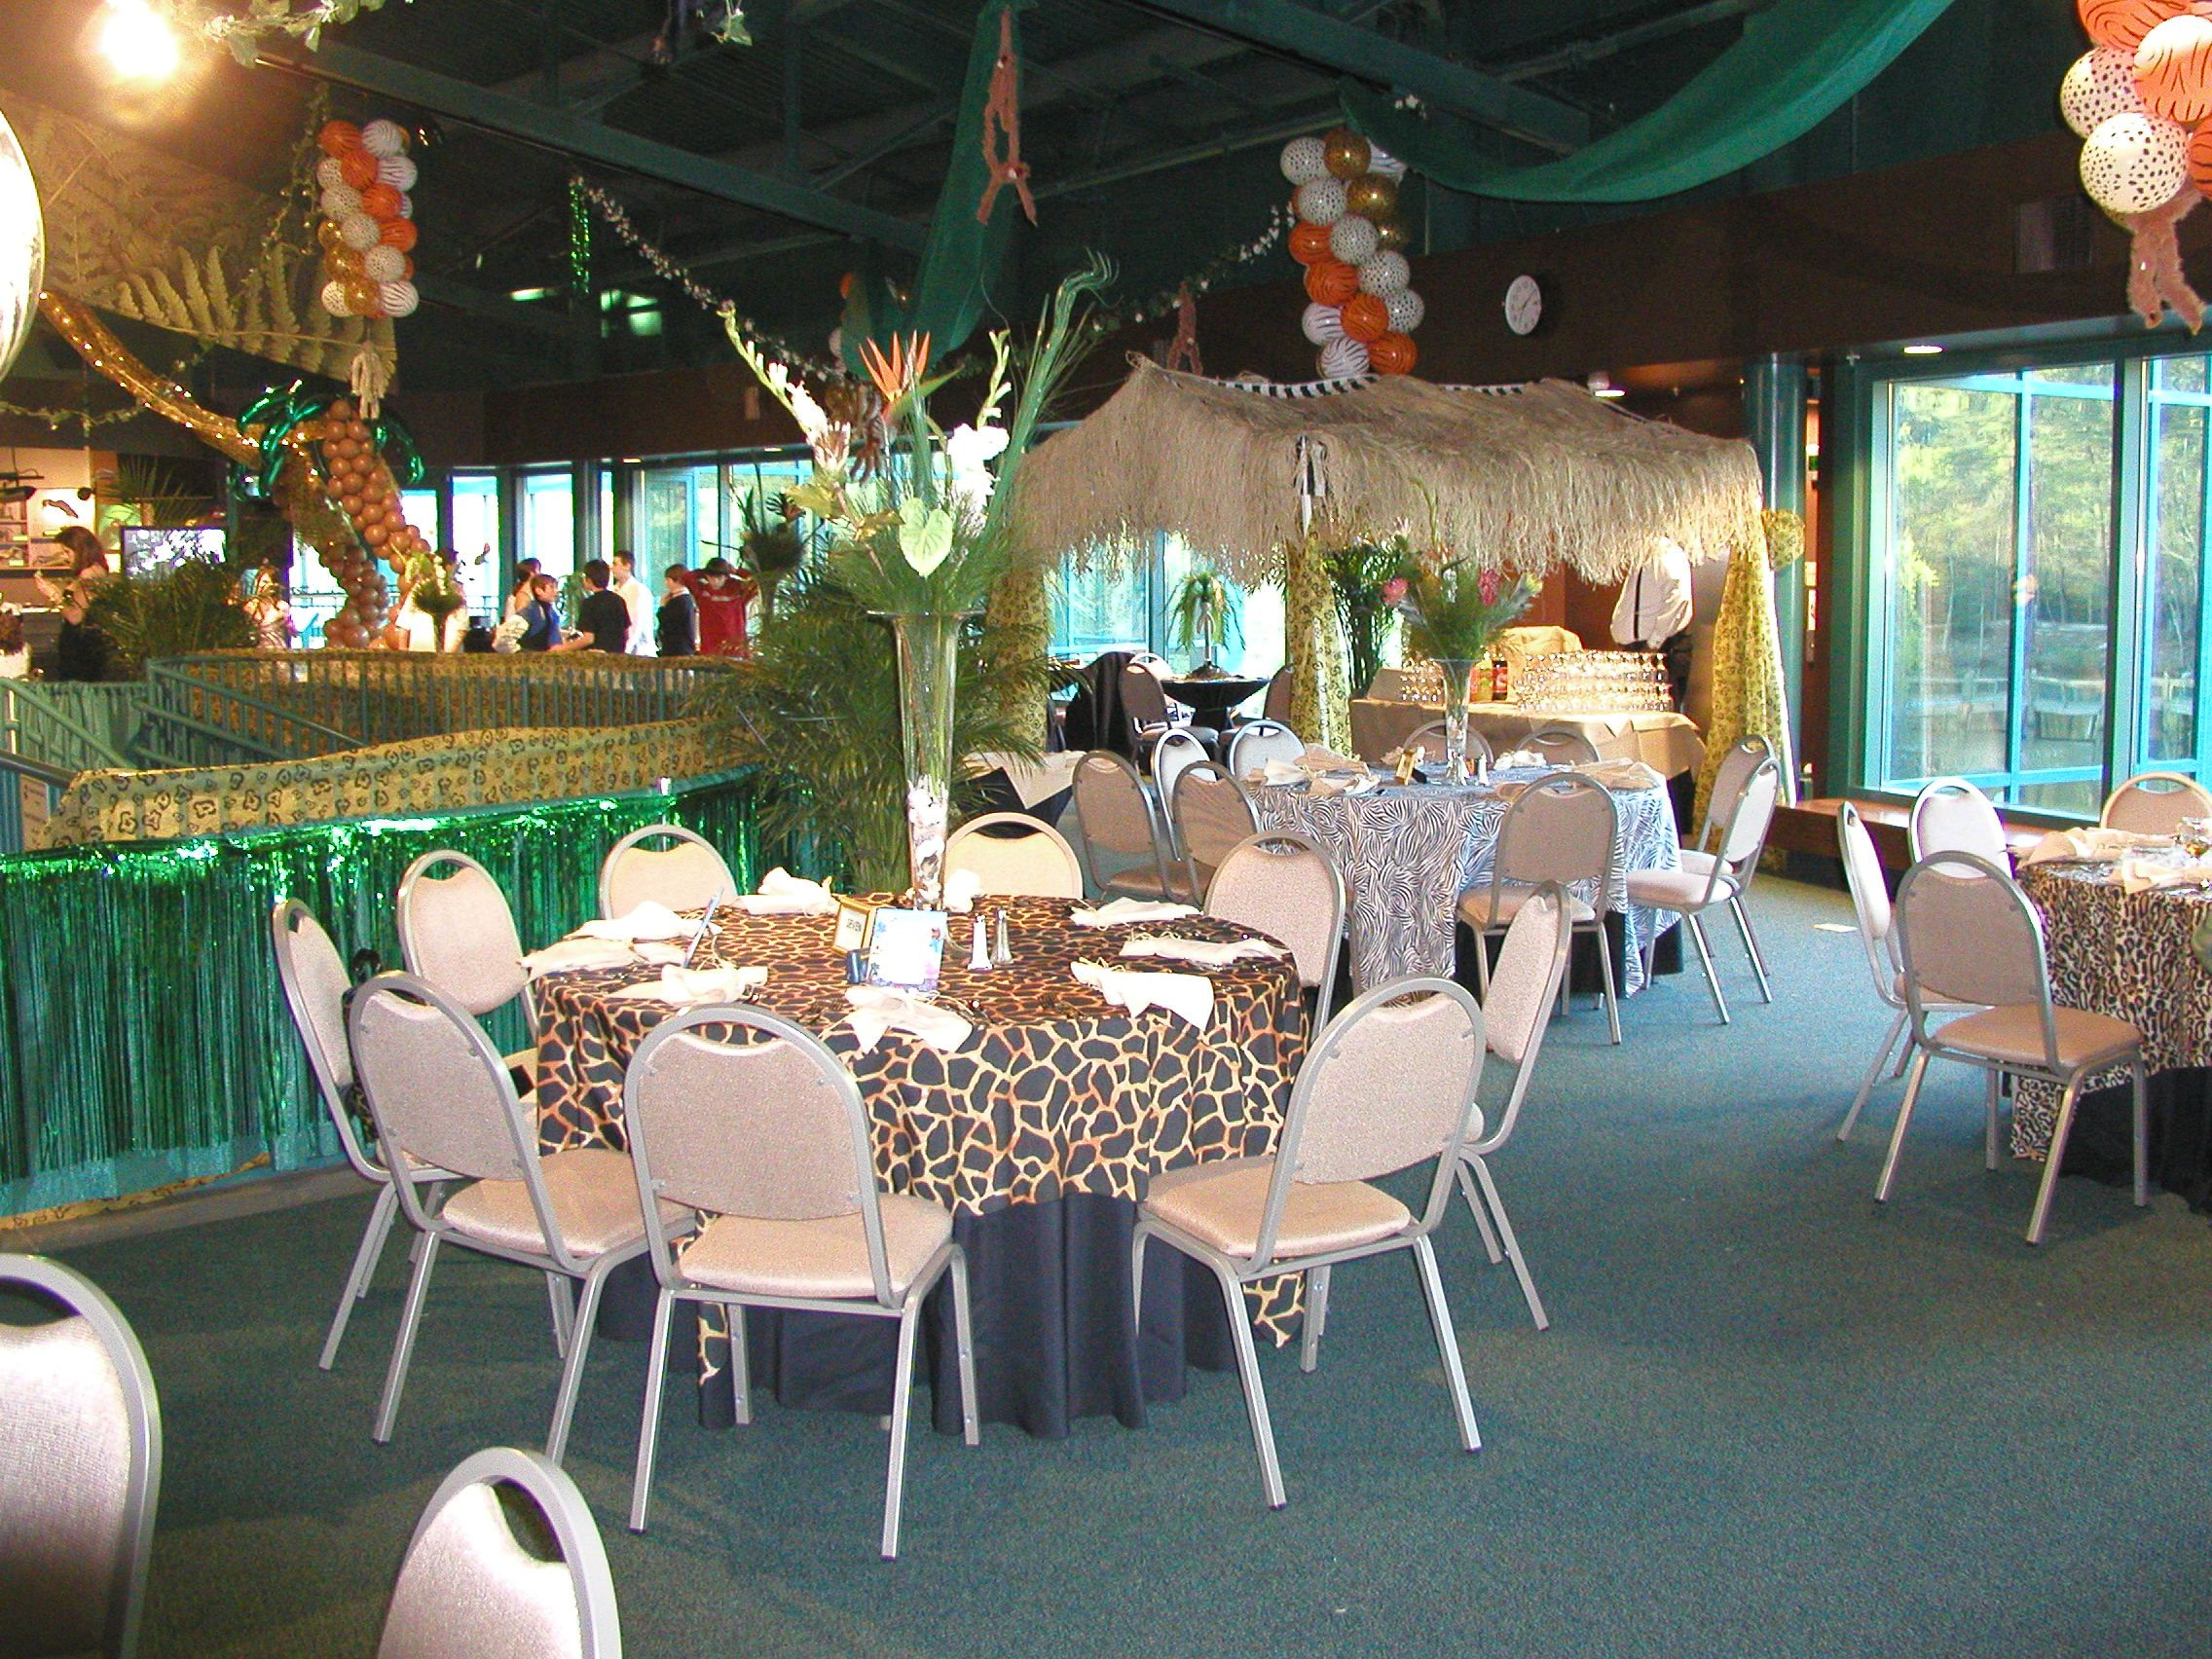 The Virginia Living Museum Is A Great Choice For An Event